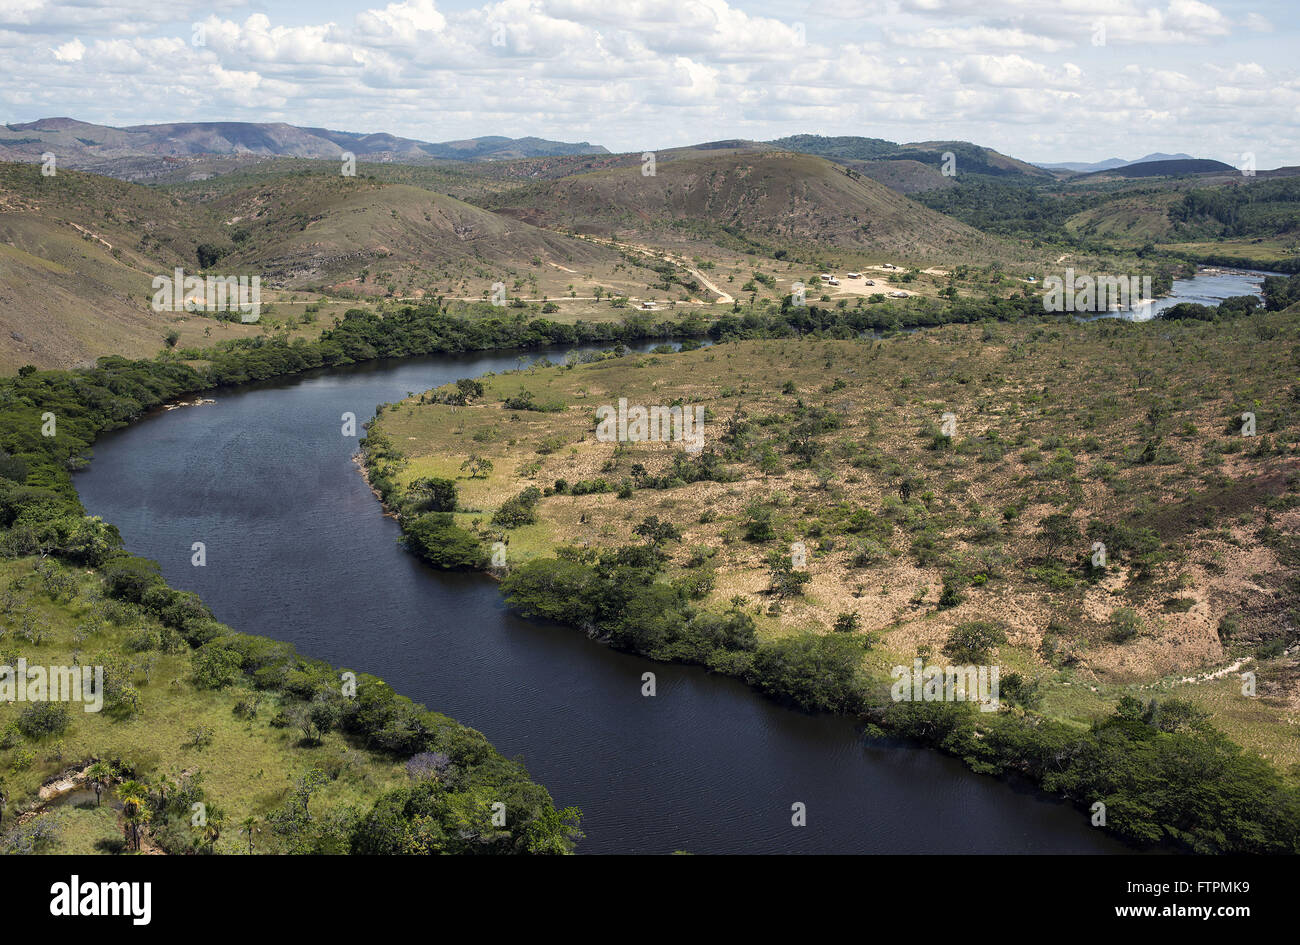 Rio Mau - natural border between Brazil and Guyana right to left - Stock Image